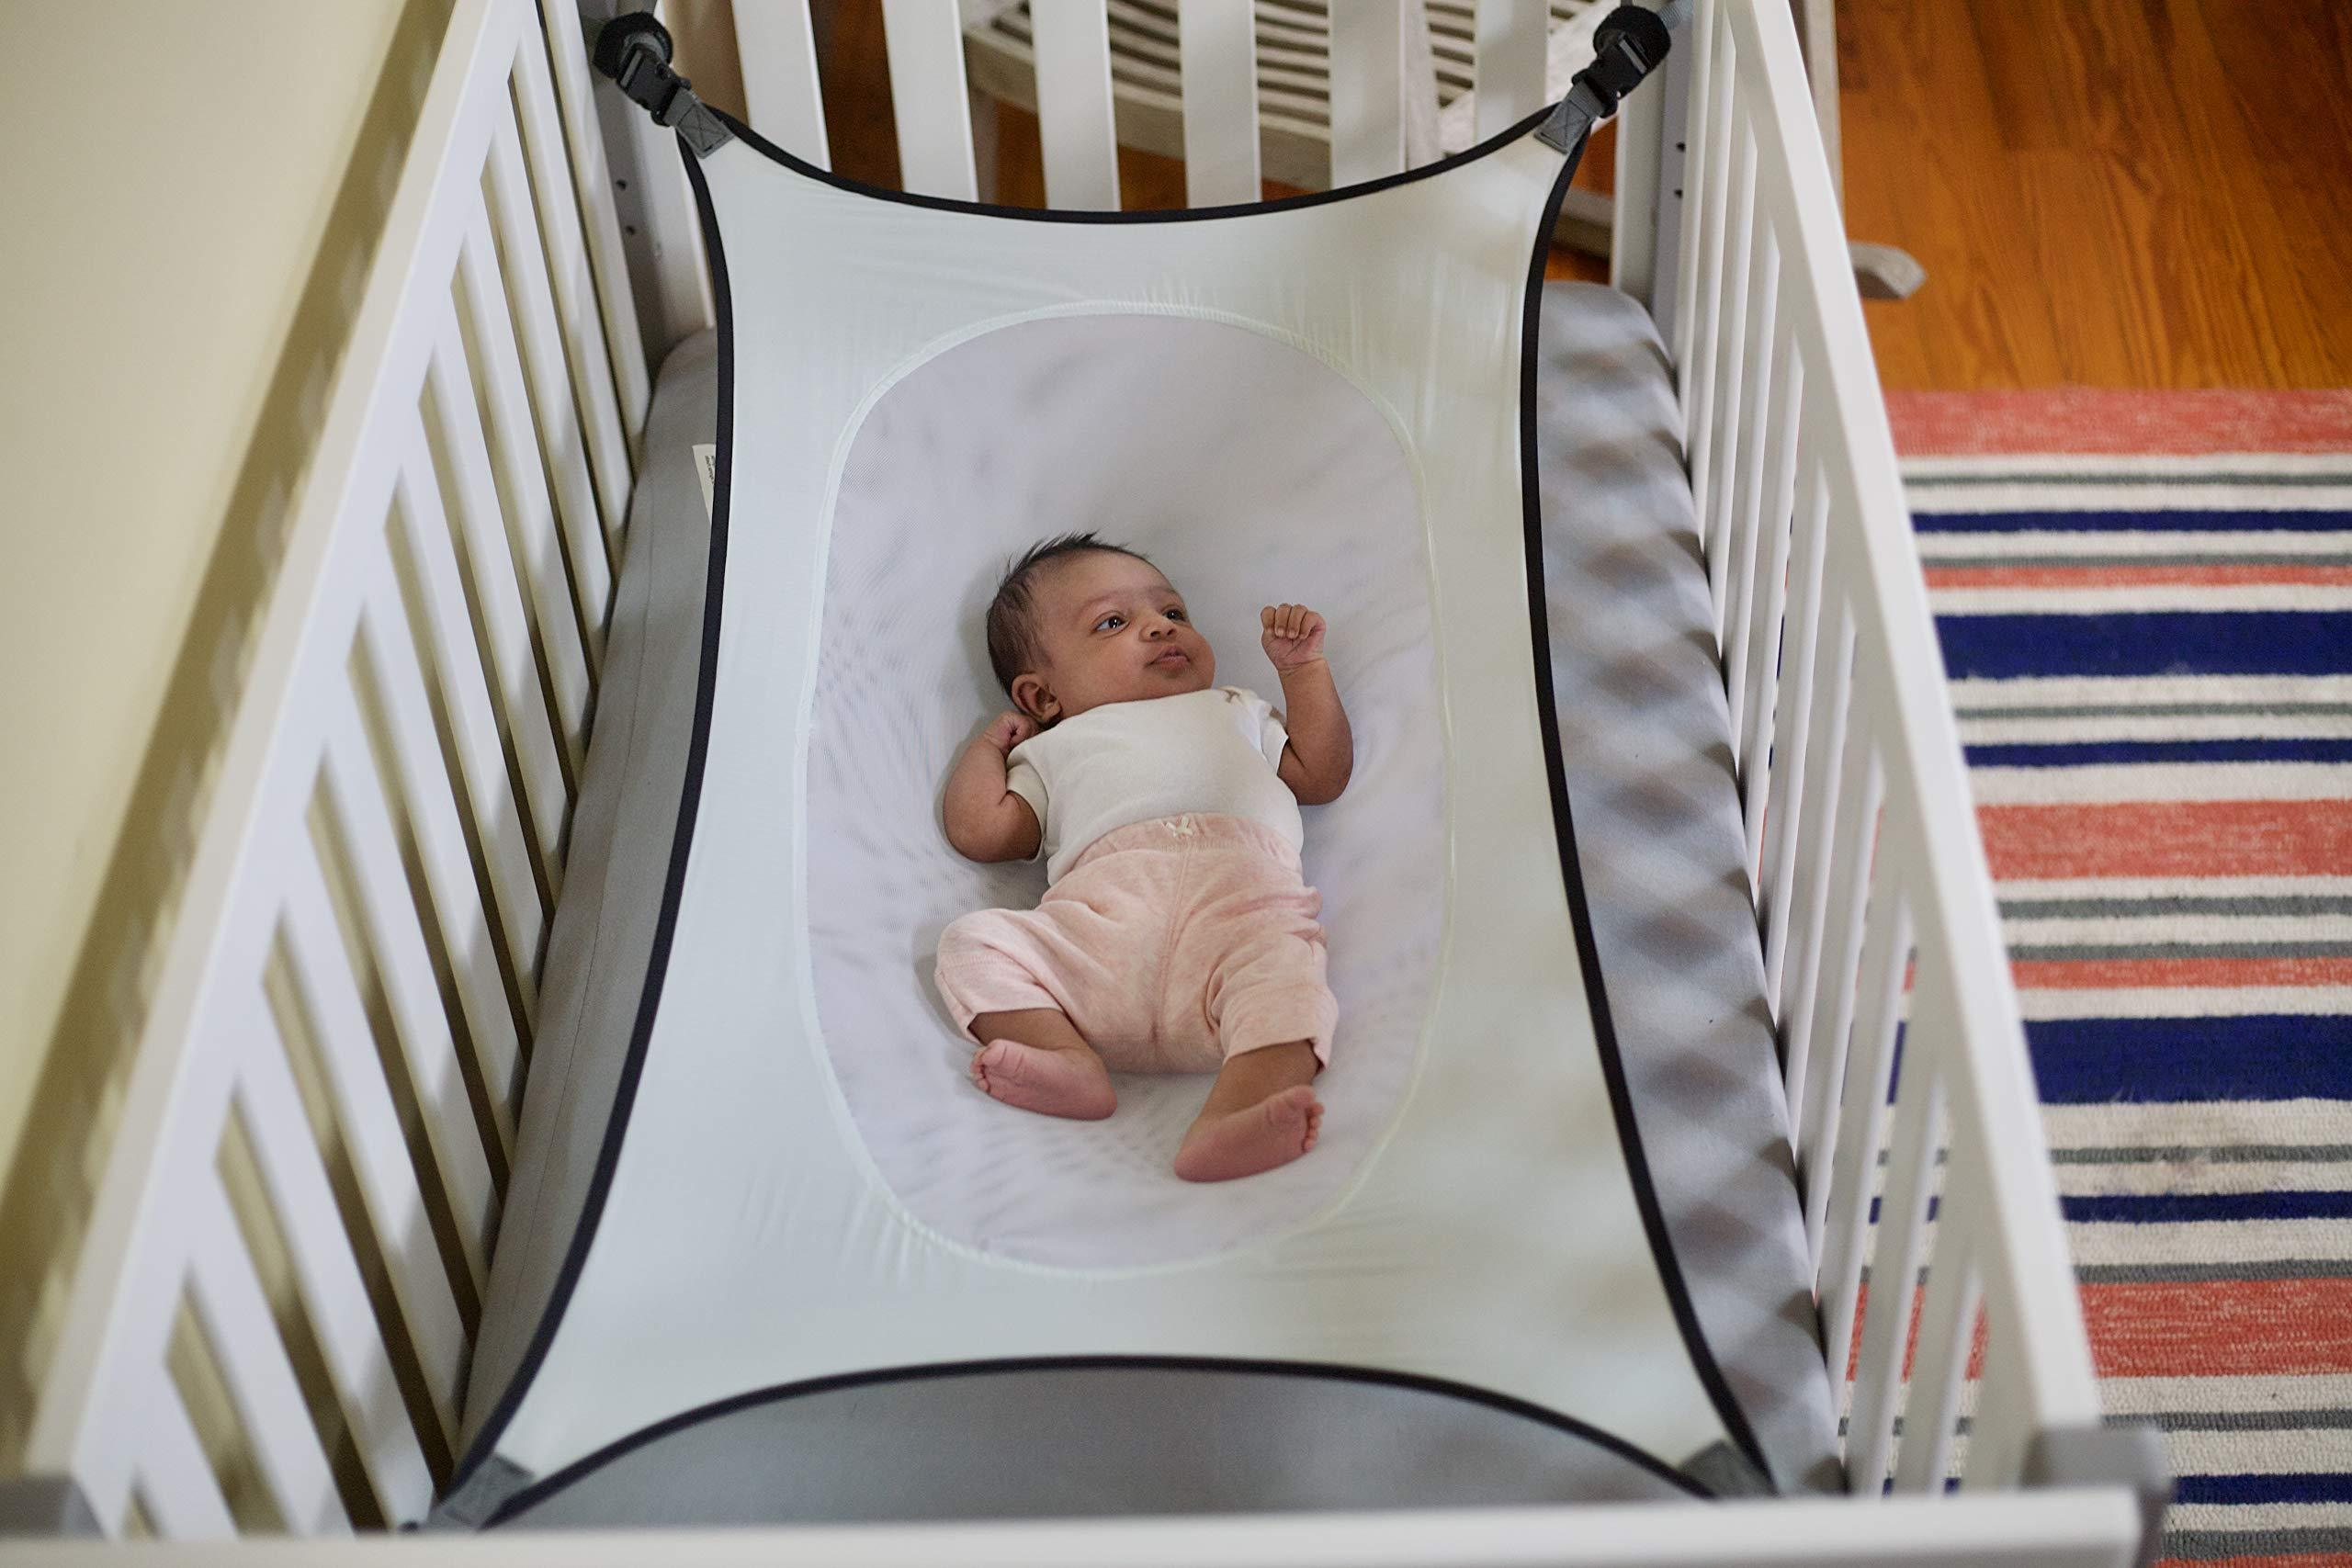 Crescent Womb Infant Safety Bed Breathable & Strong Material That Mimics The Womb While Reducing The... by Crescent Womb